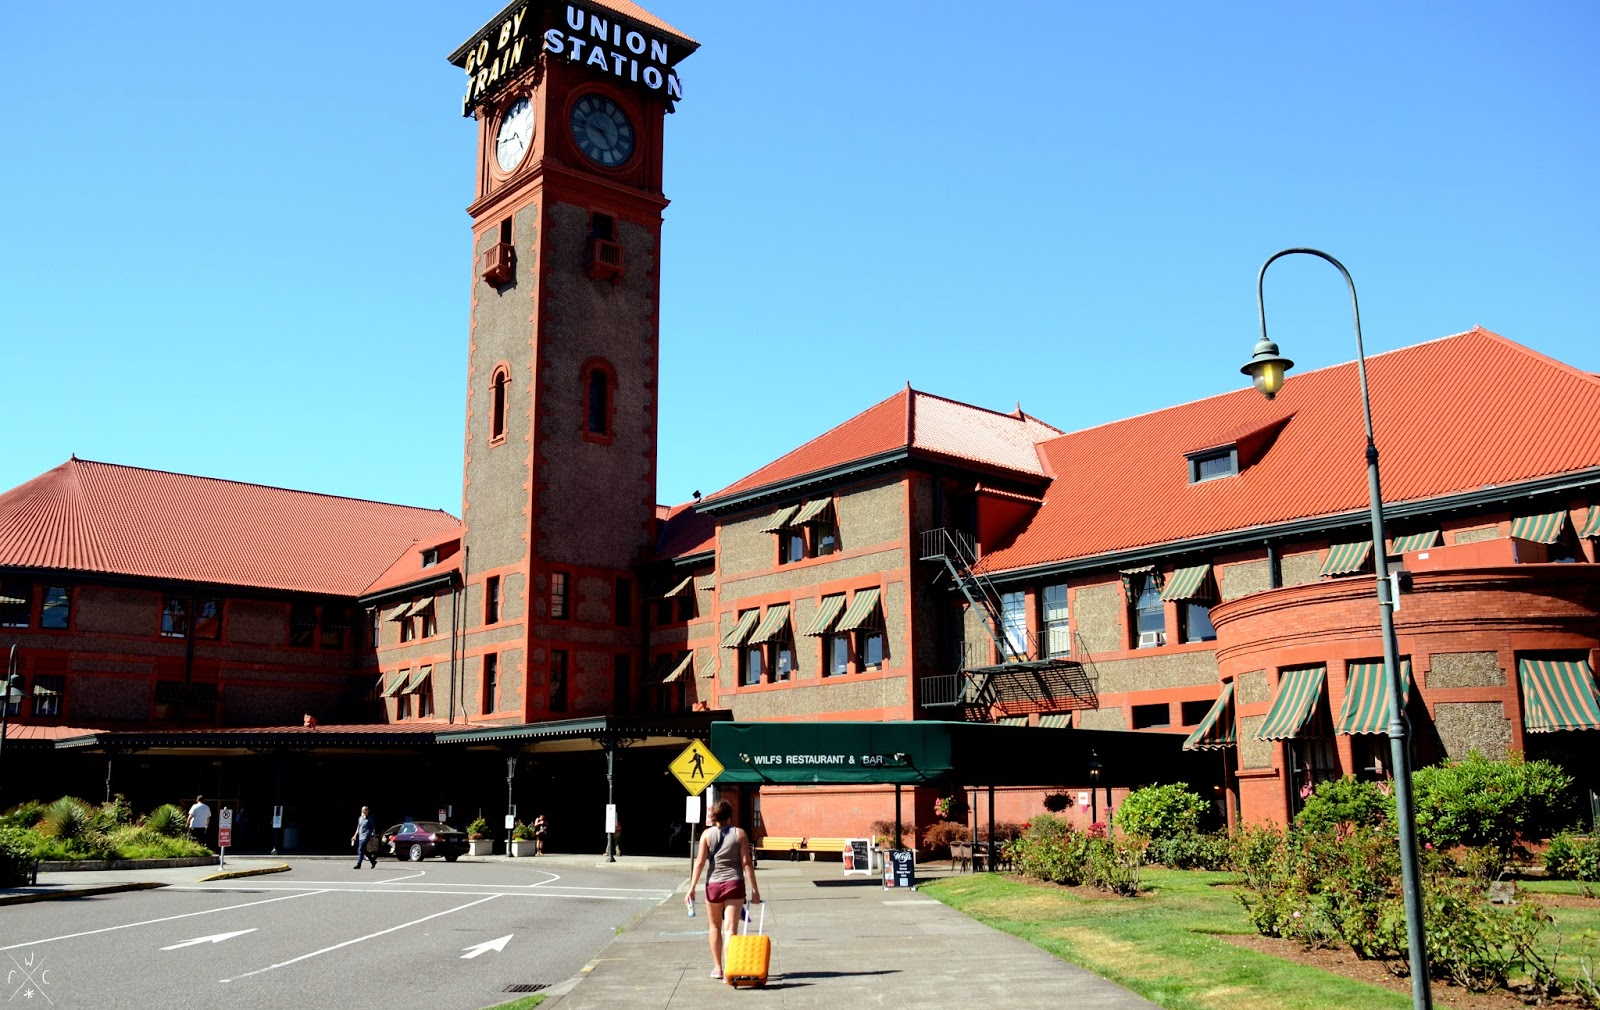 Union Station - Portland - USA